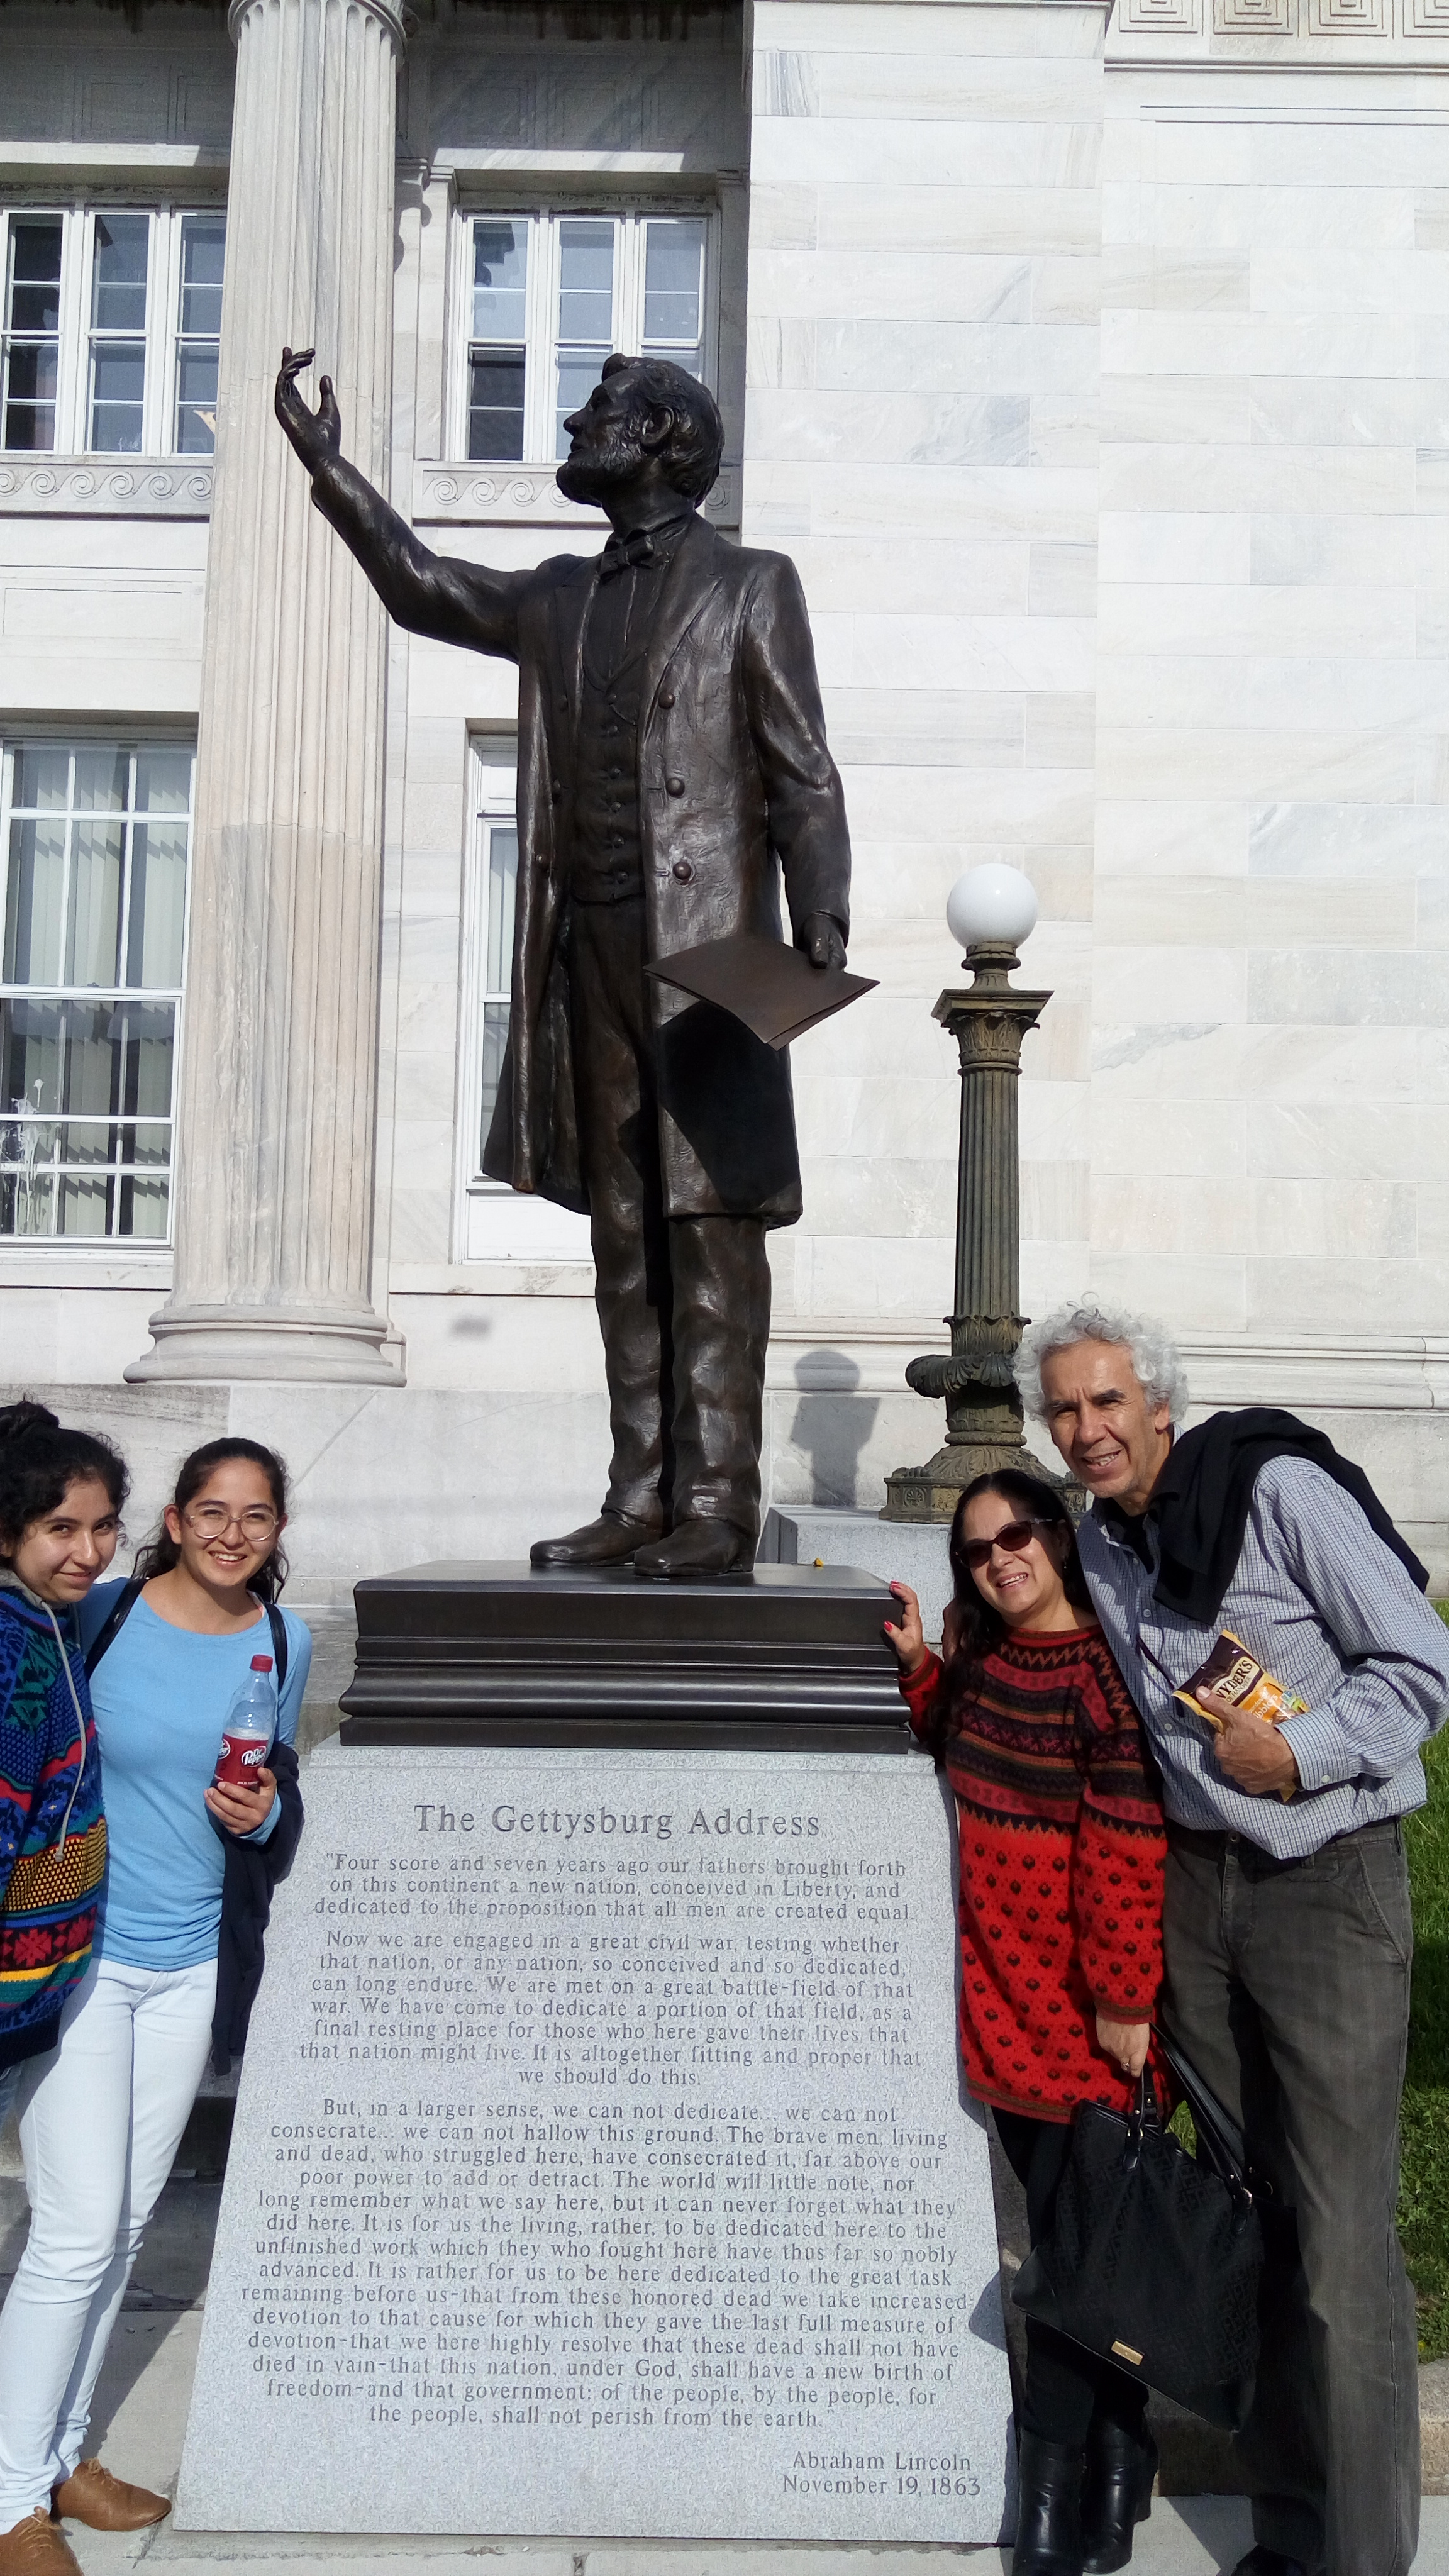 Visiting the historic town of Gettysburg, thanks to Dr. Oscar Murillo and one of his colleagues.